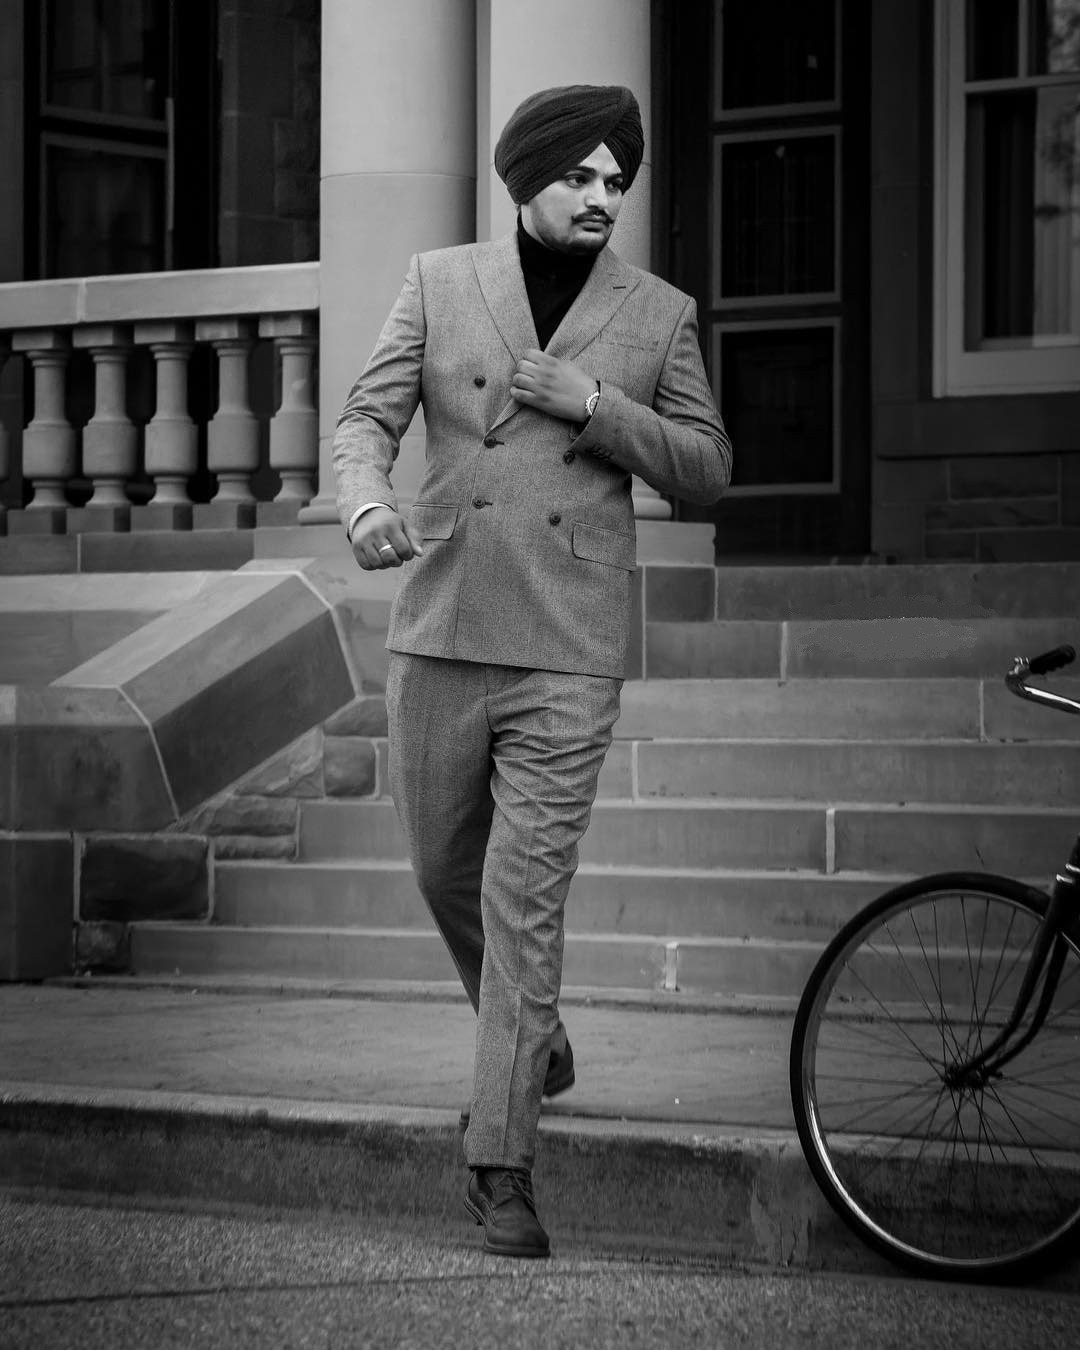 sidhu mooose wala in black and white image. he is coming down from stairs. he wear pent coat and tie a black turan.